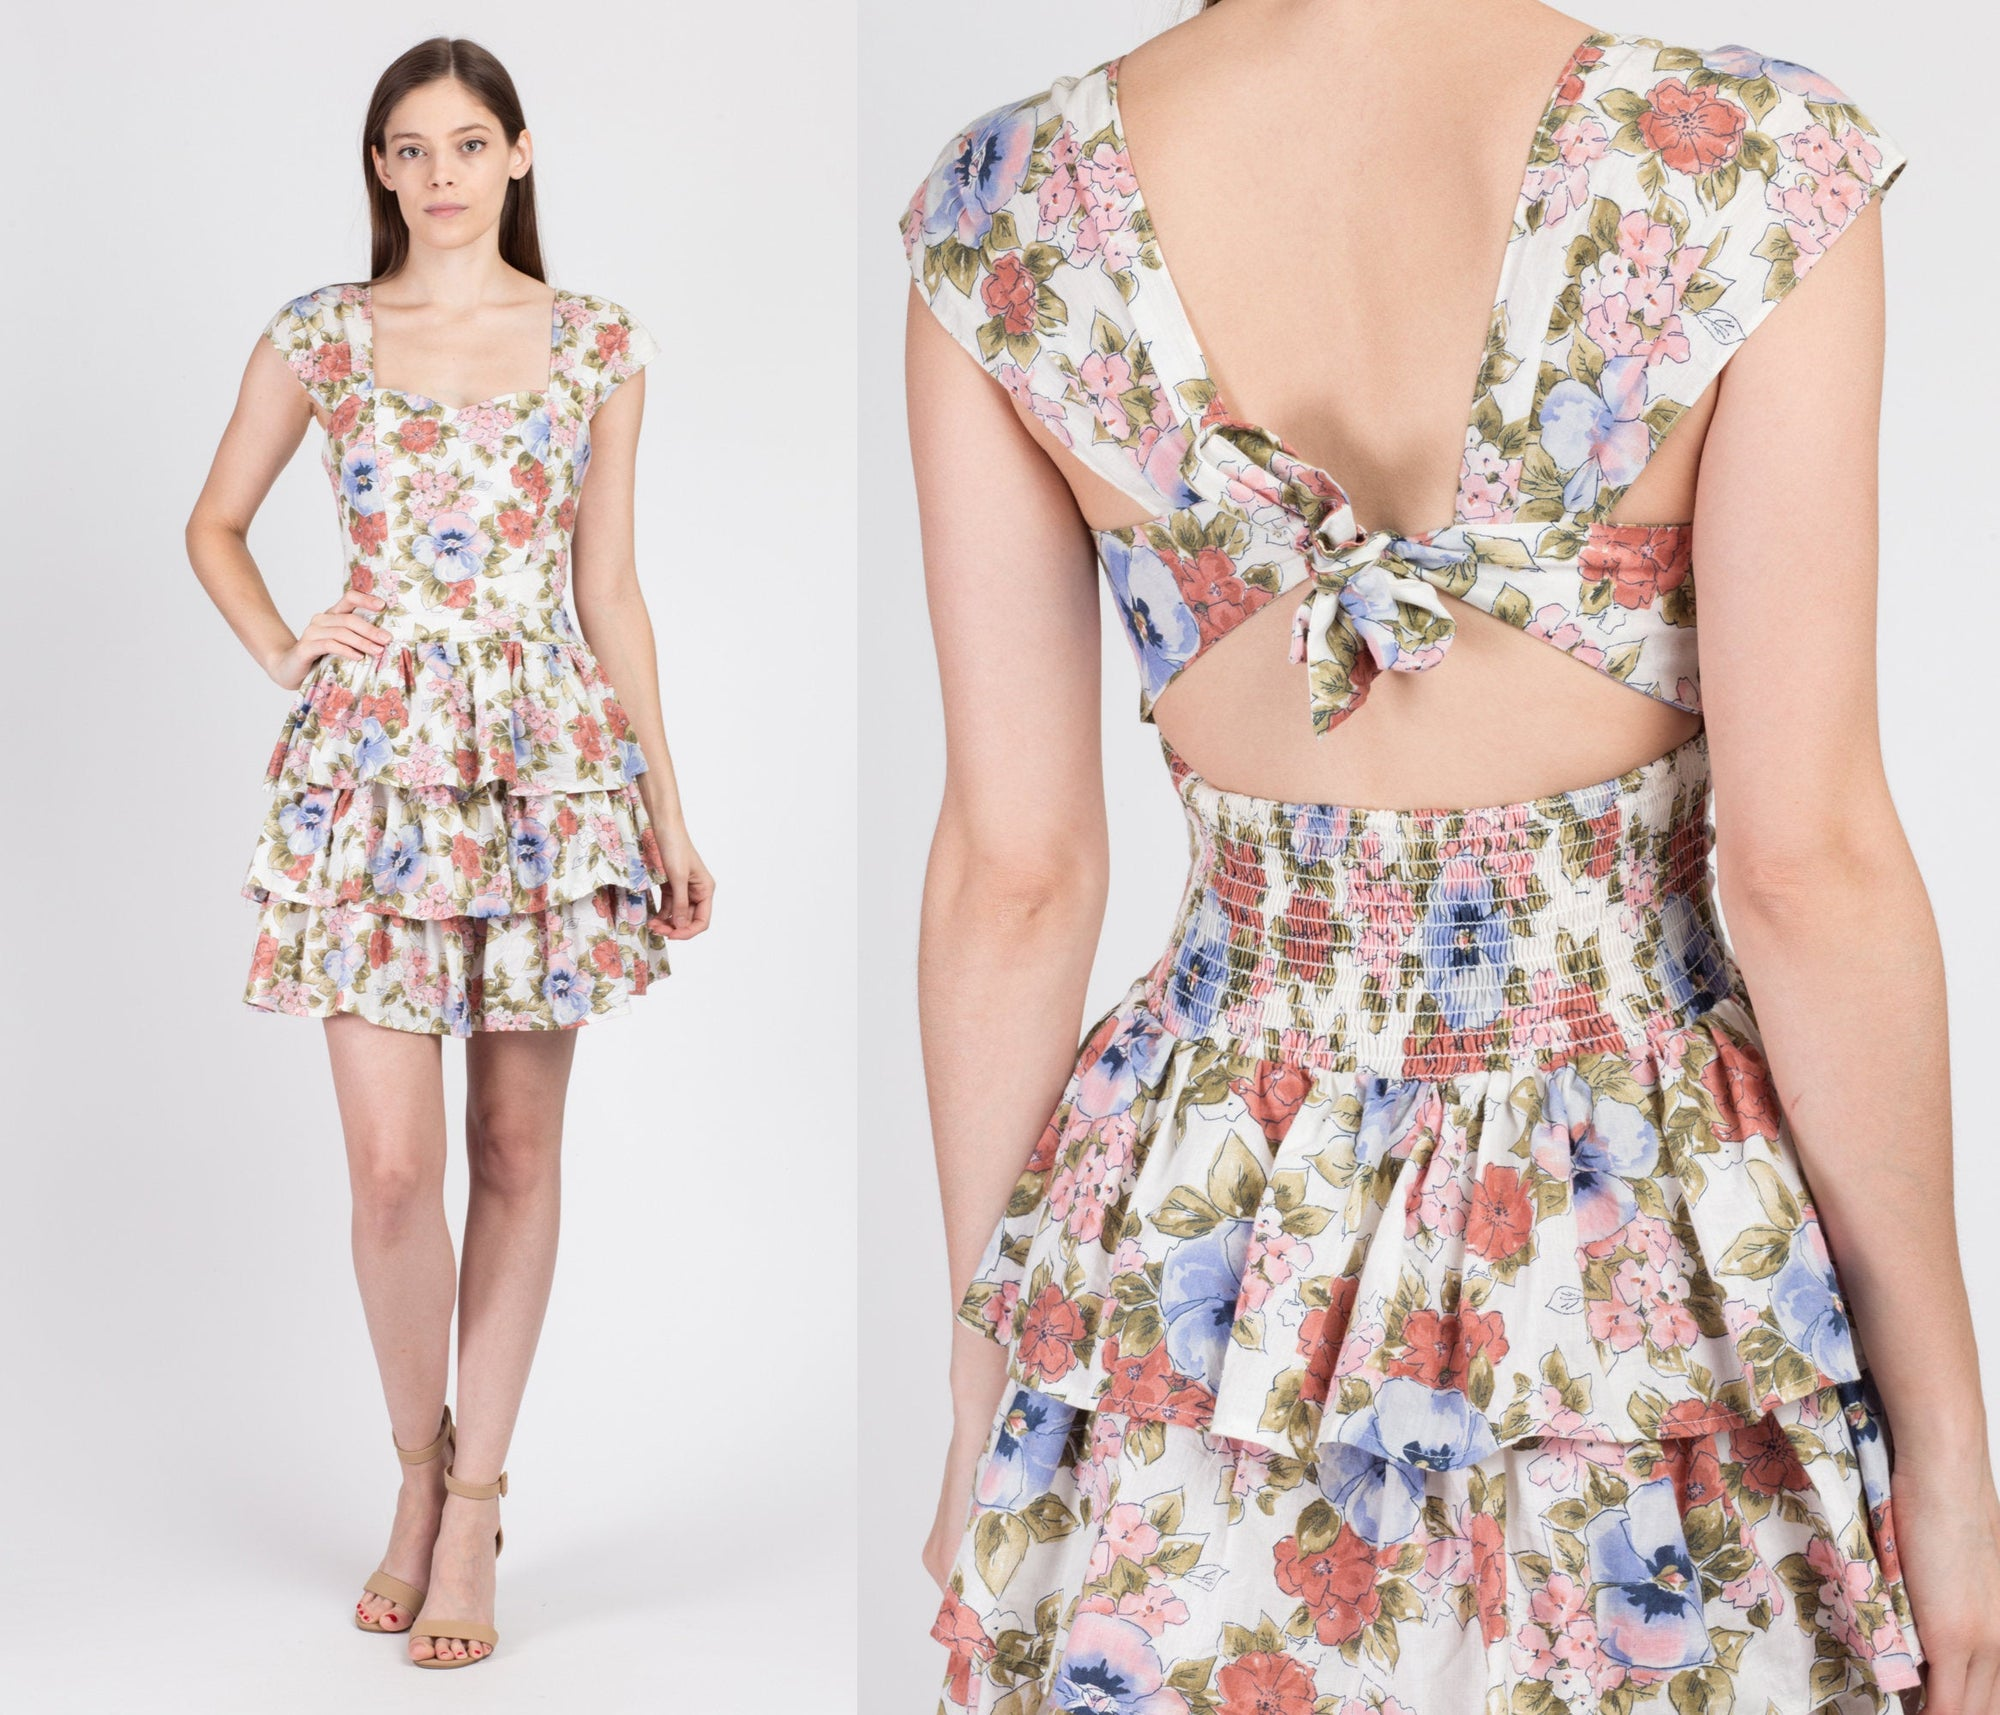 90s Floral Backless Tiered Skirt Mini Dress - Small